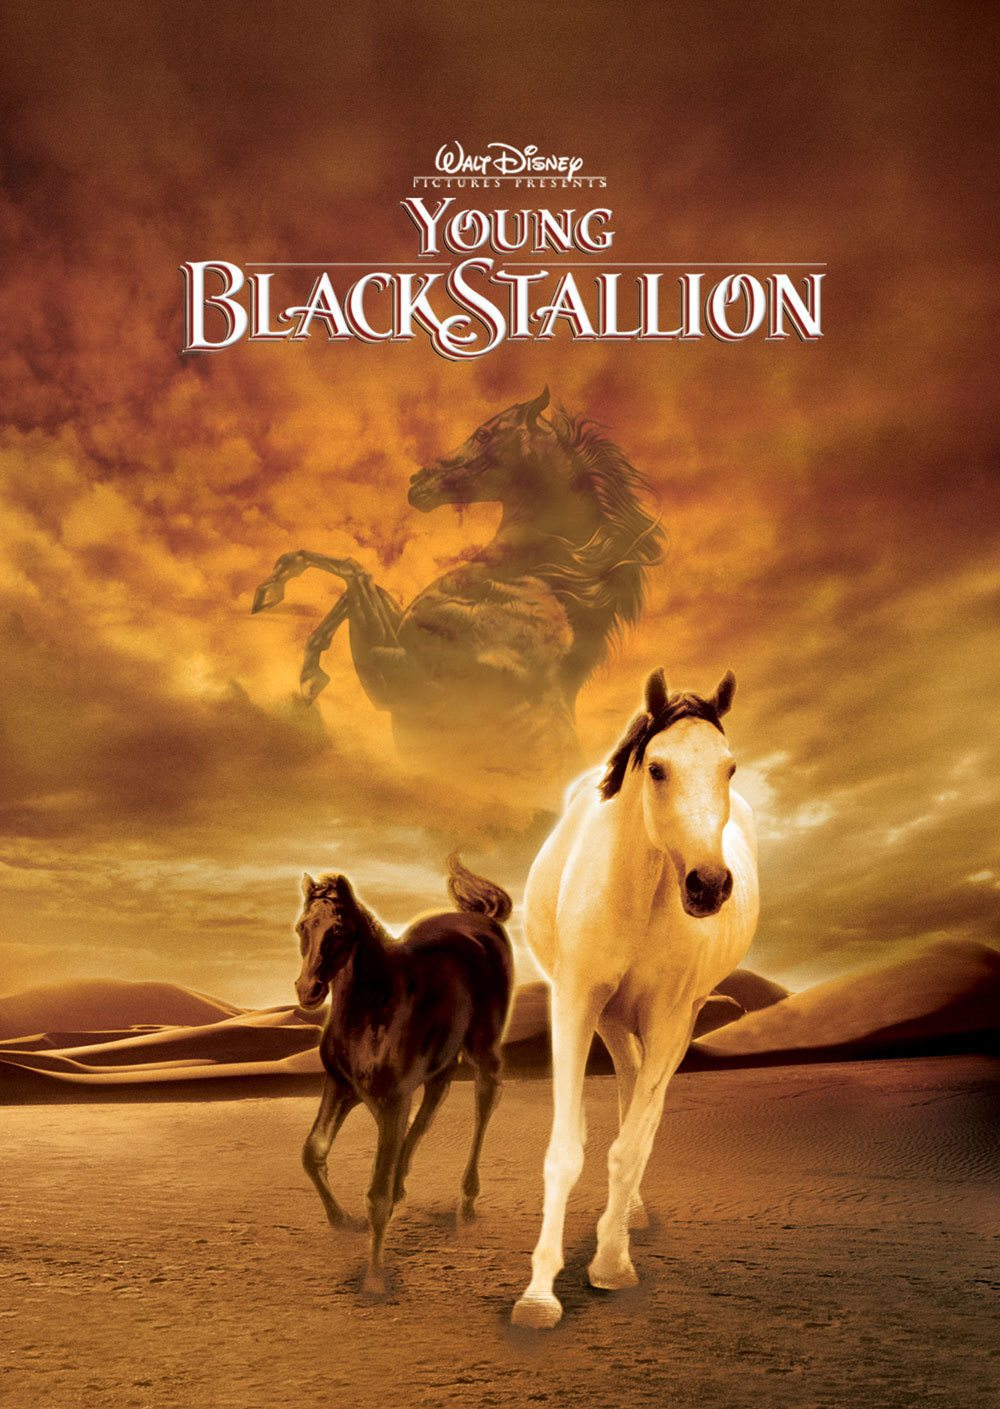 Affiche Poster légende étalon noir young black stallion disney